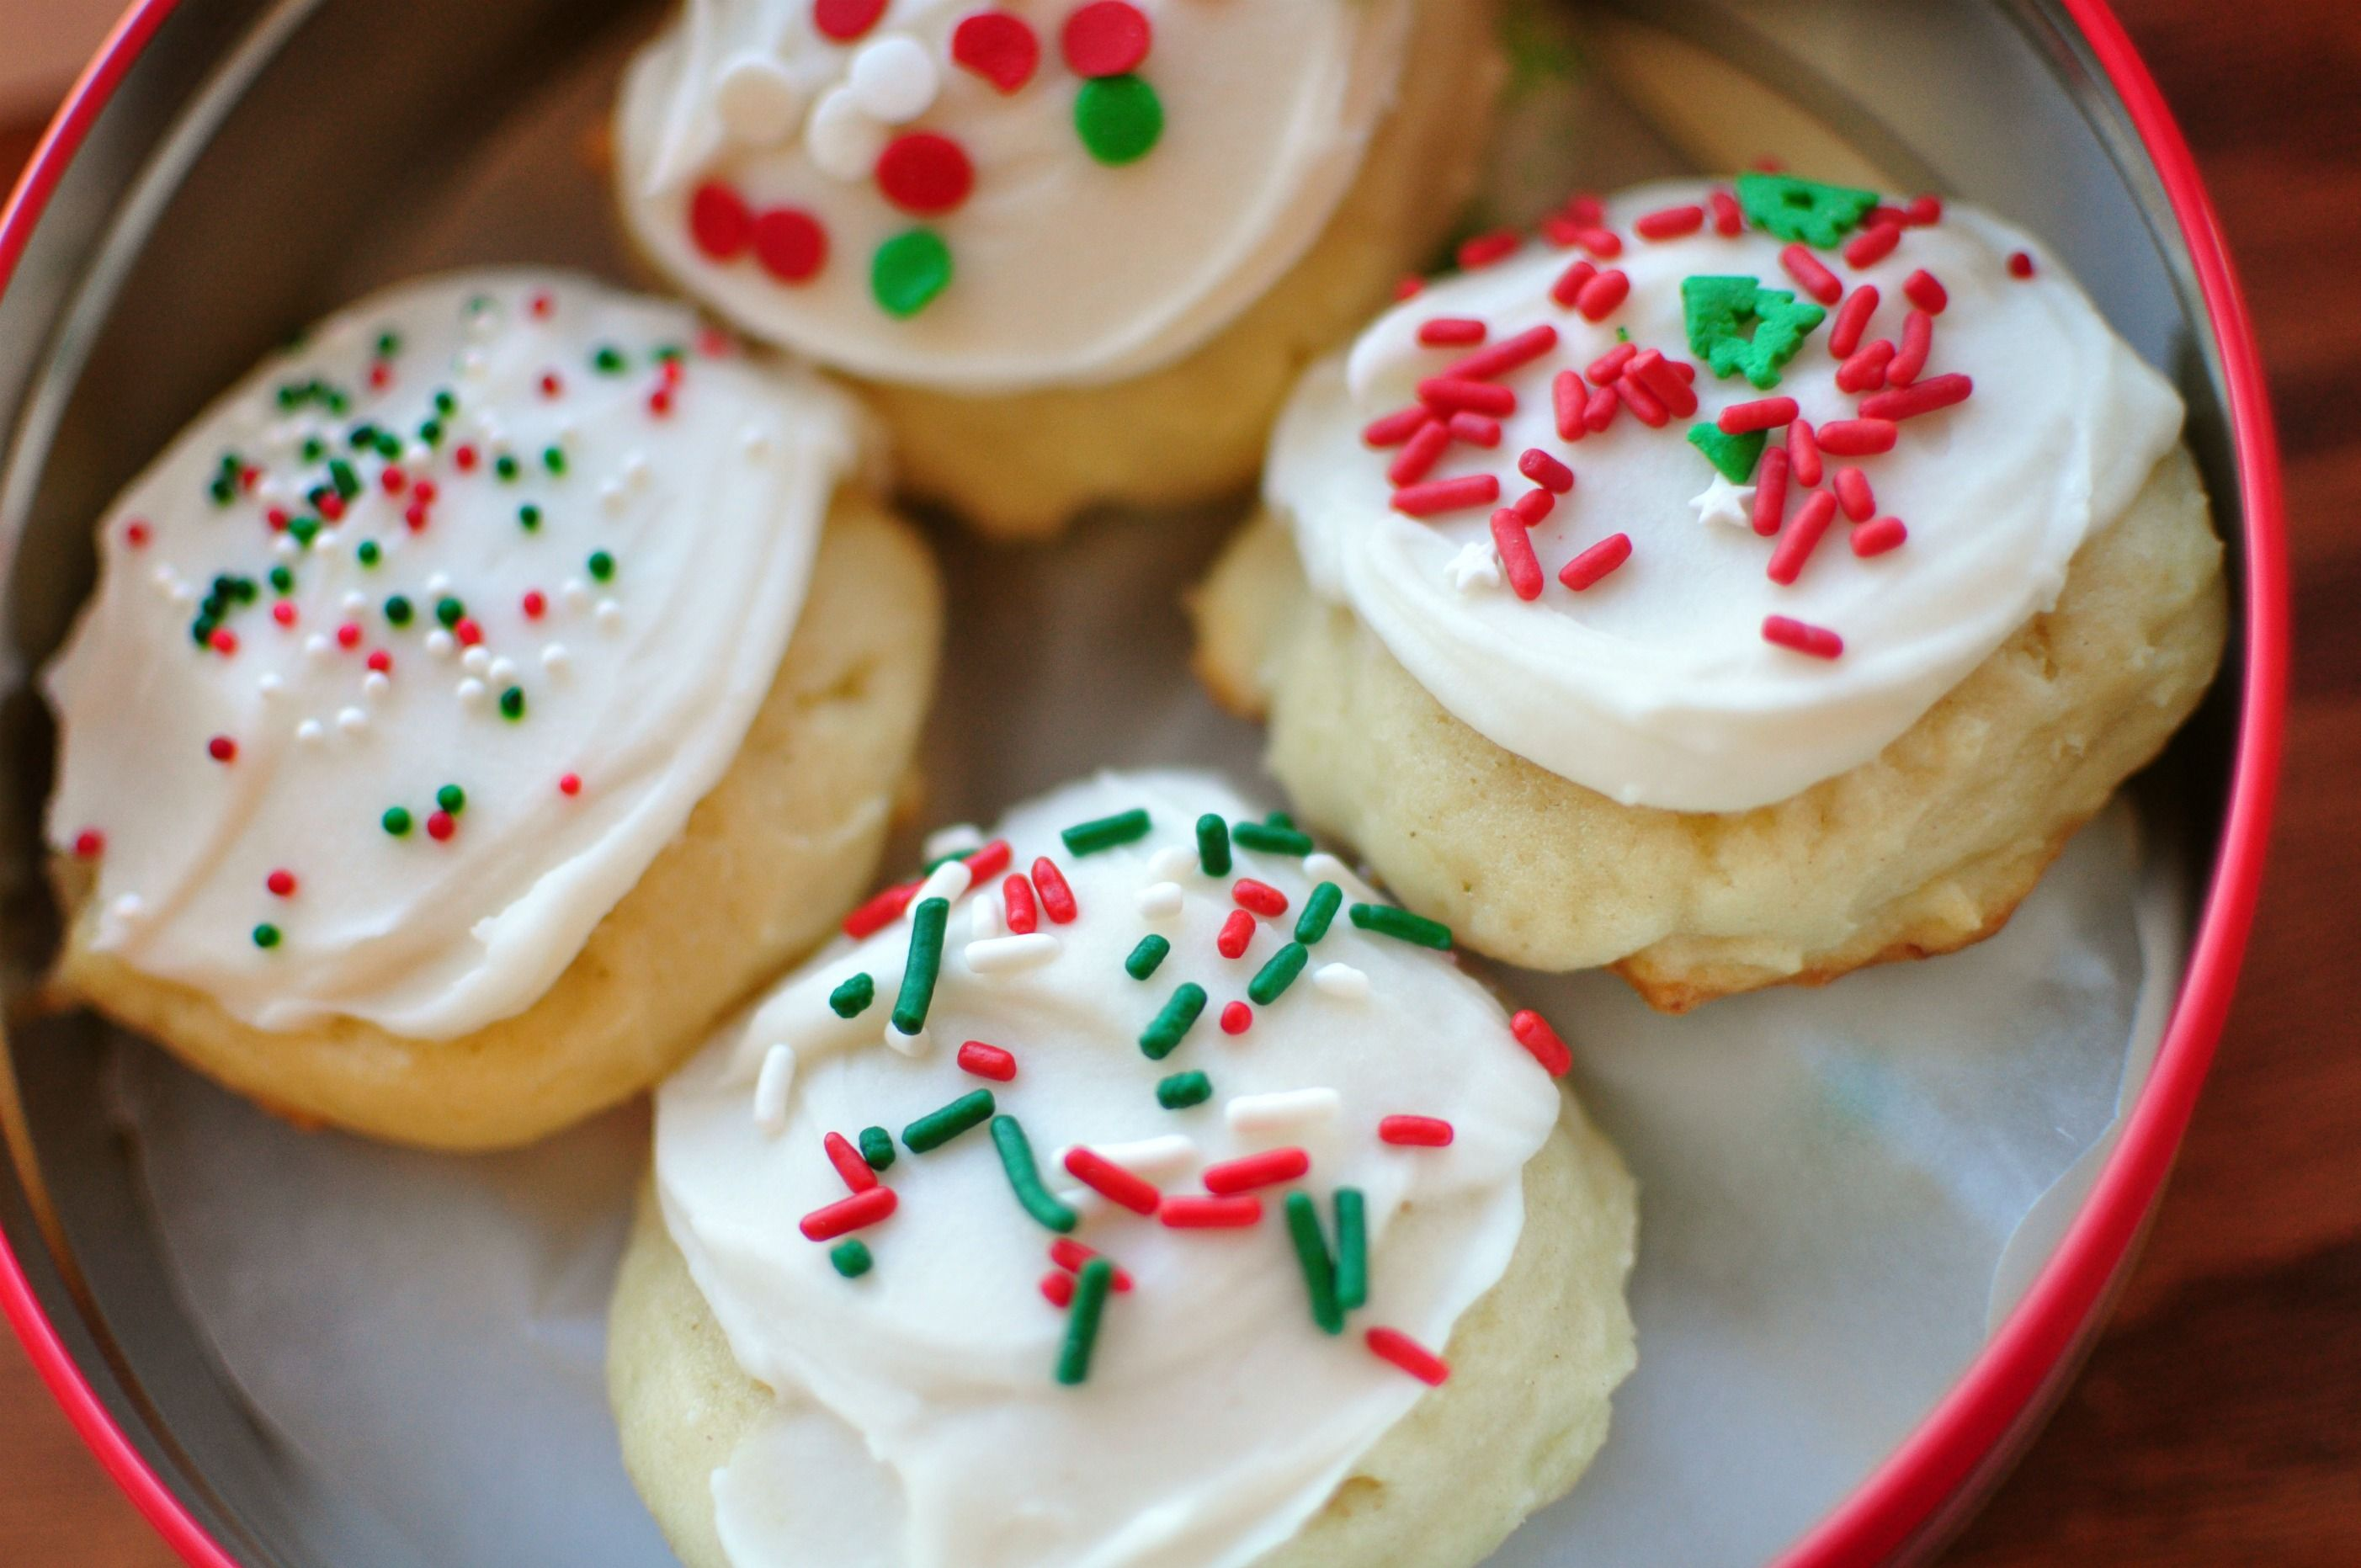 italian christmas cookies recipe food pinterest italian christmas cookies italian christmas and christmas cookies - Italian Christmas Cookies Recipe